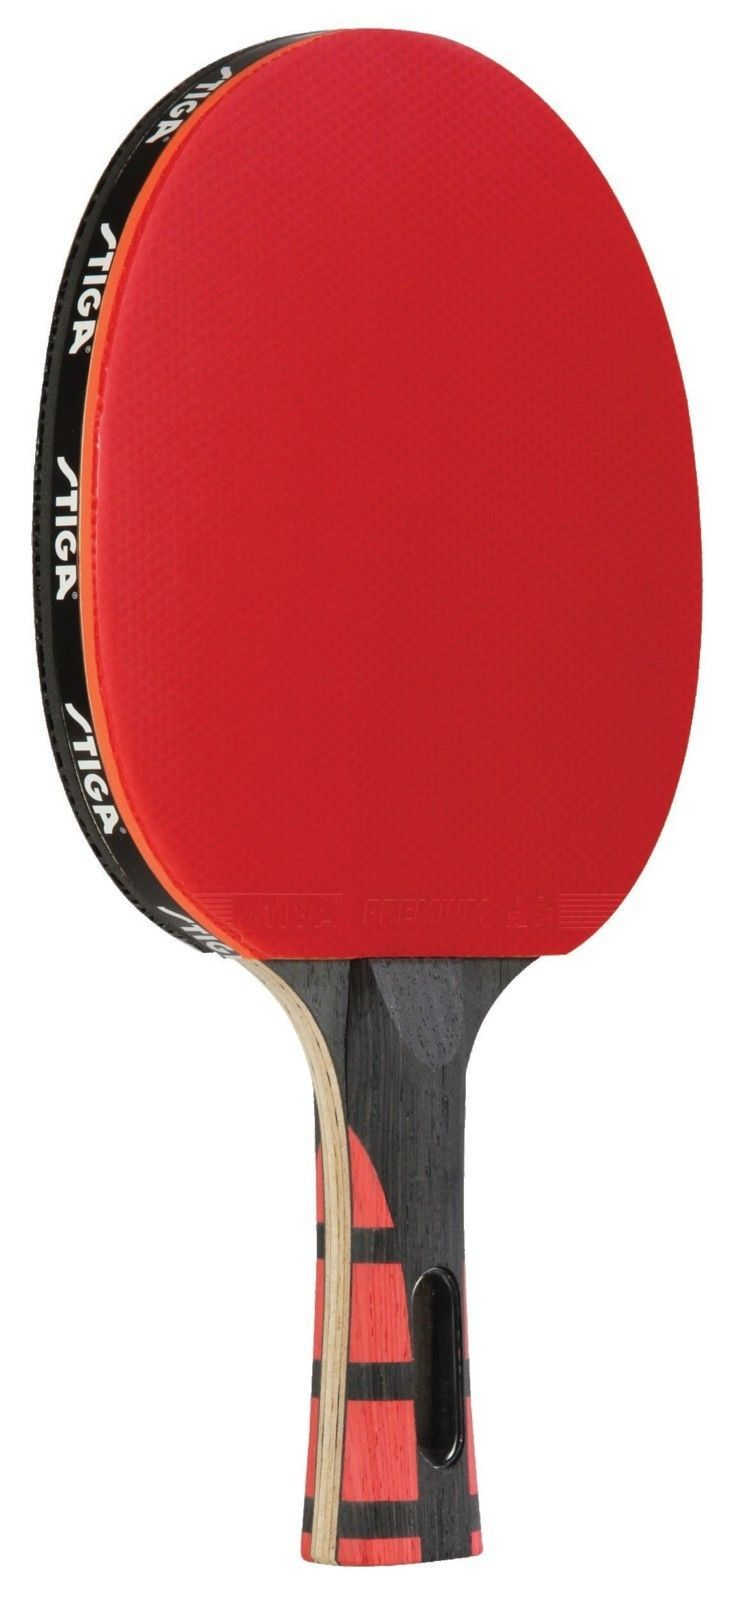 Sport Ping Pong Paddle Tournament Evolution Table Tennis Train Racket By Stiga Table Tennis Table Tennis Racket Ping Pong Paddles